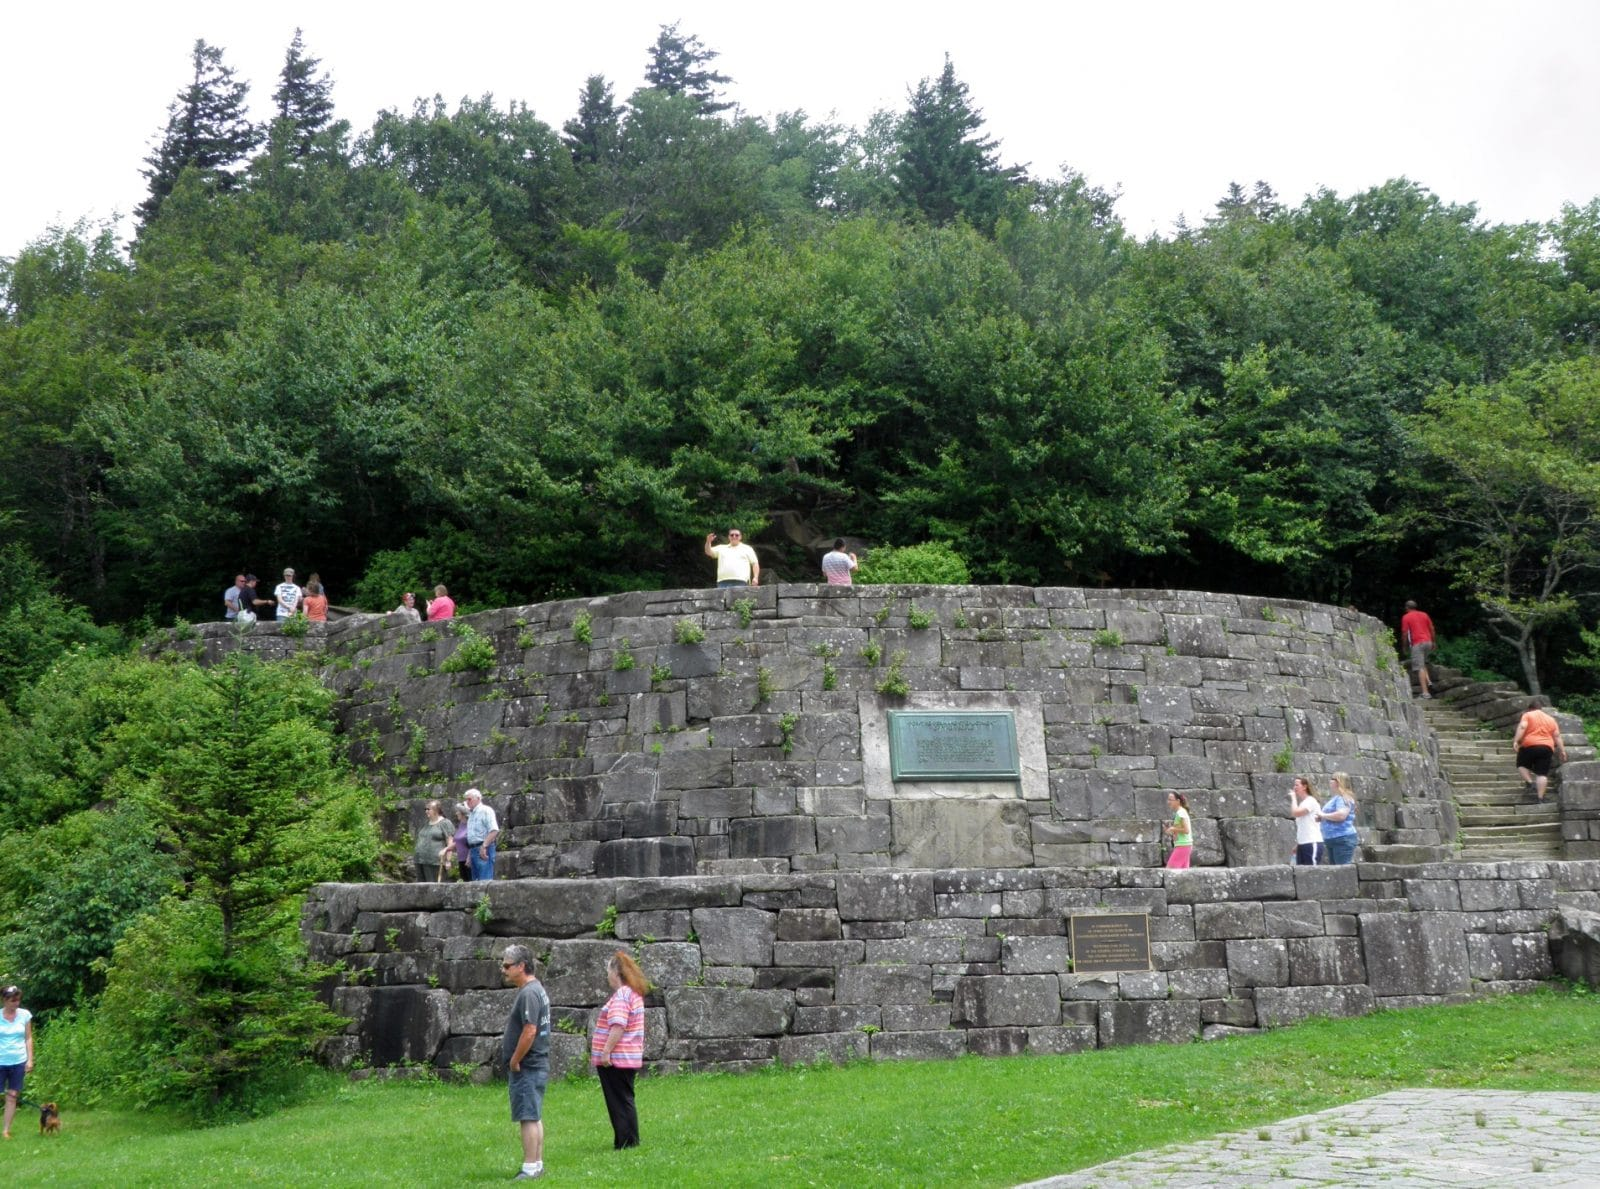 Rockefeller Monument in Great Smoky Mountains National Park